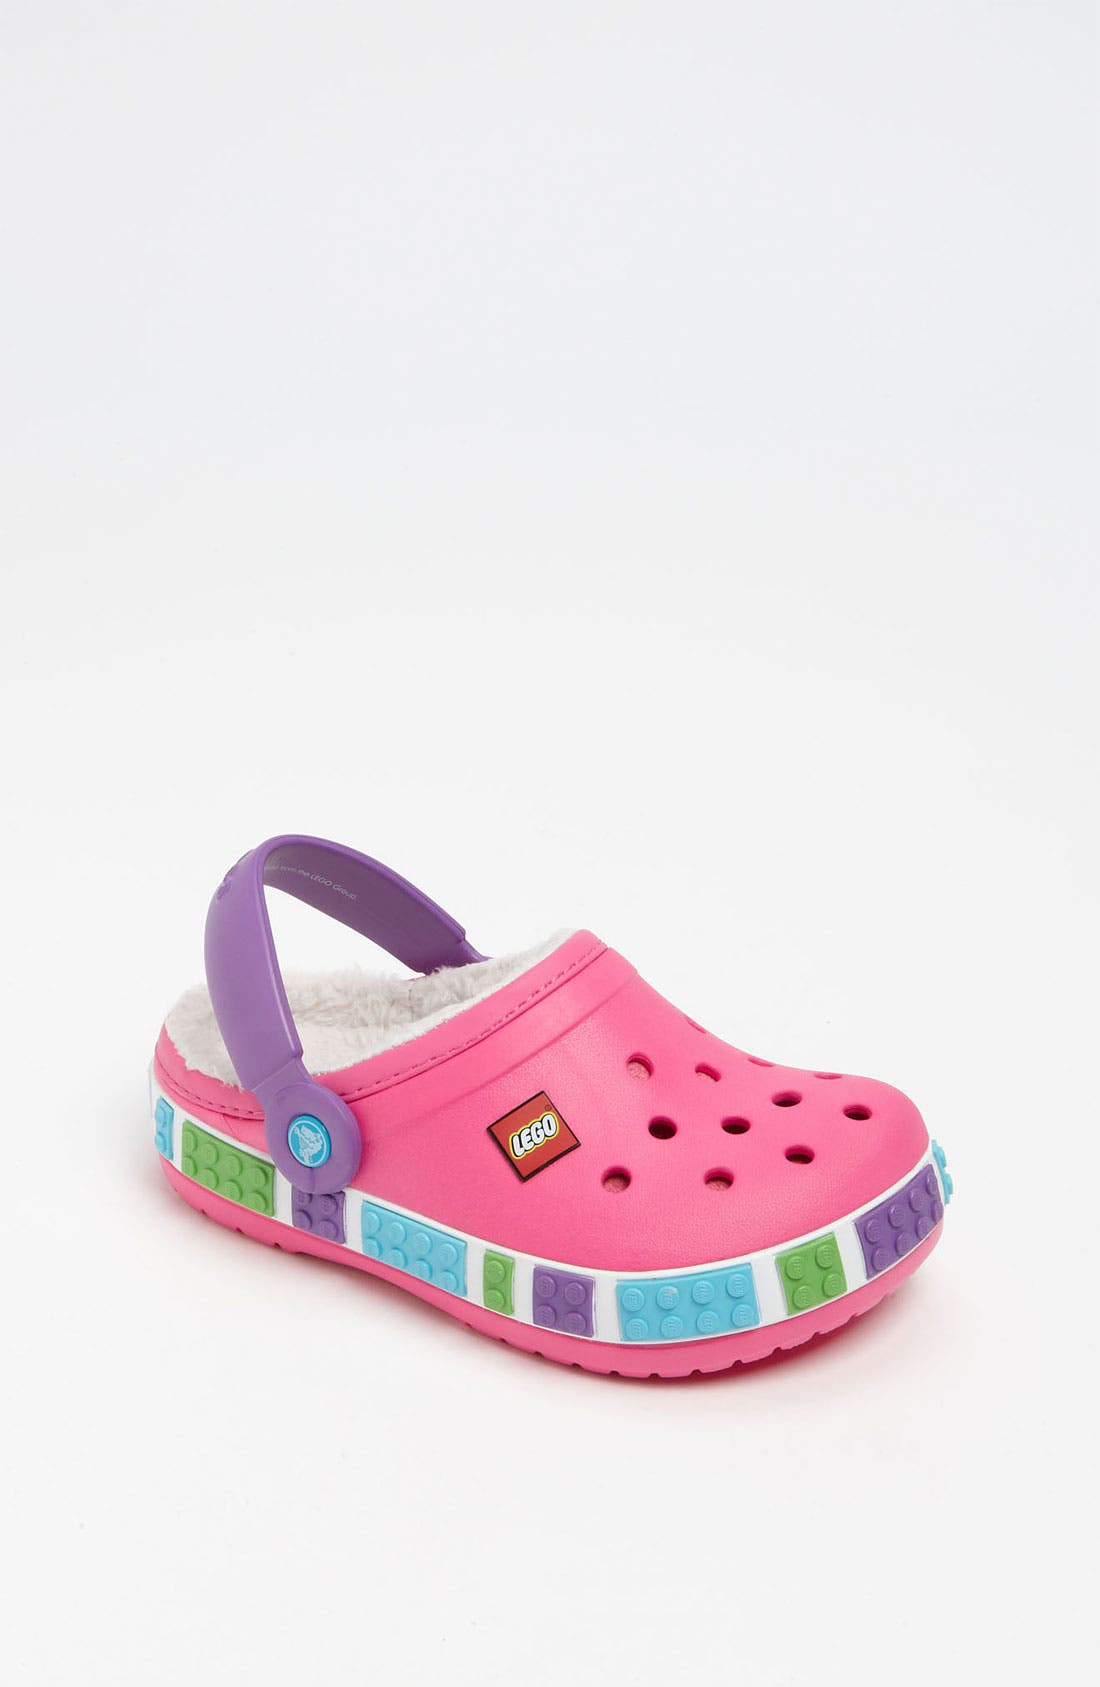 Main Image - CROCS™ 'Mammoth - LEGO®' Slip-On (Walker, Toddler & Little Kid)